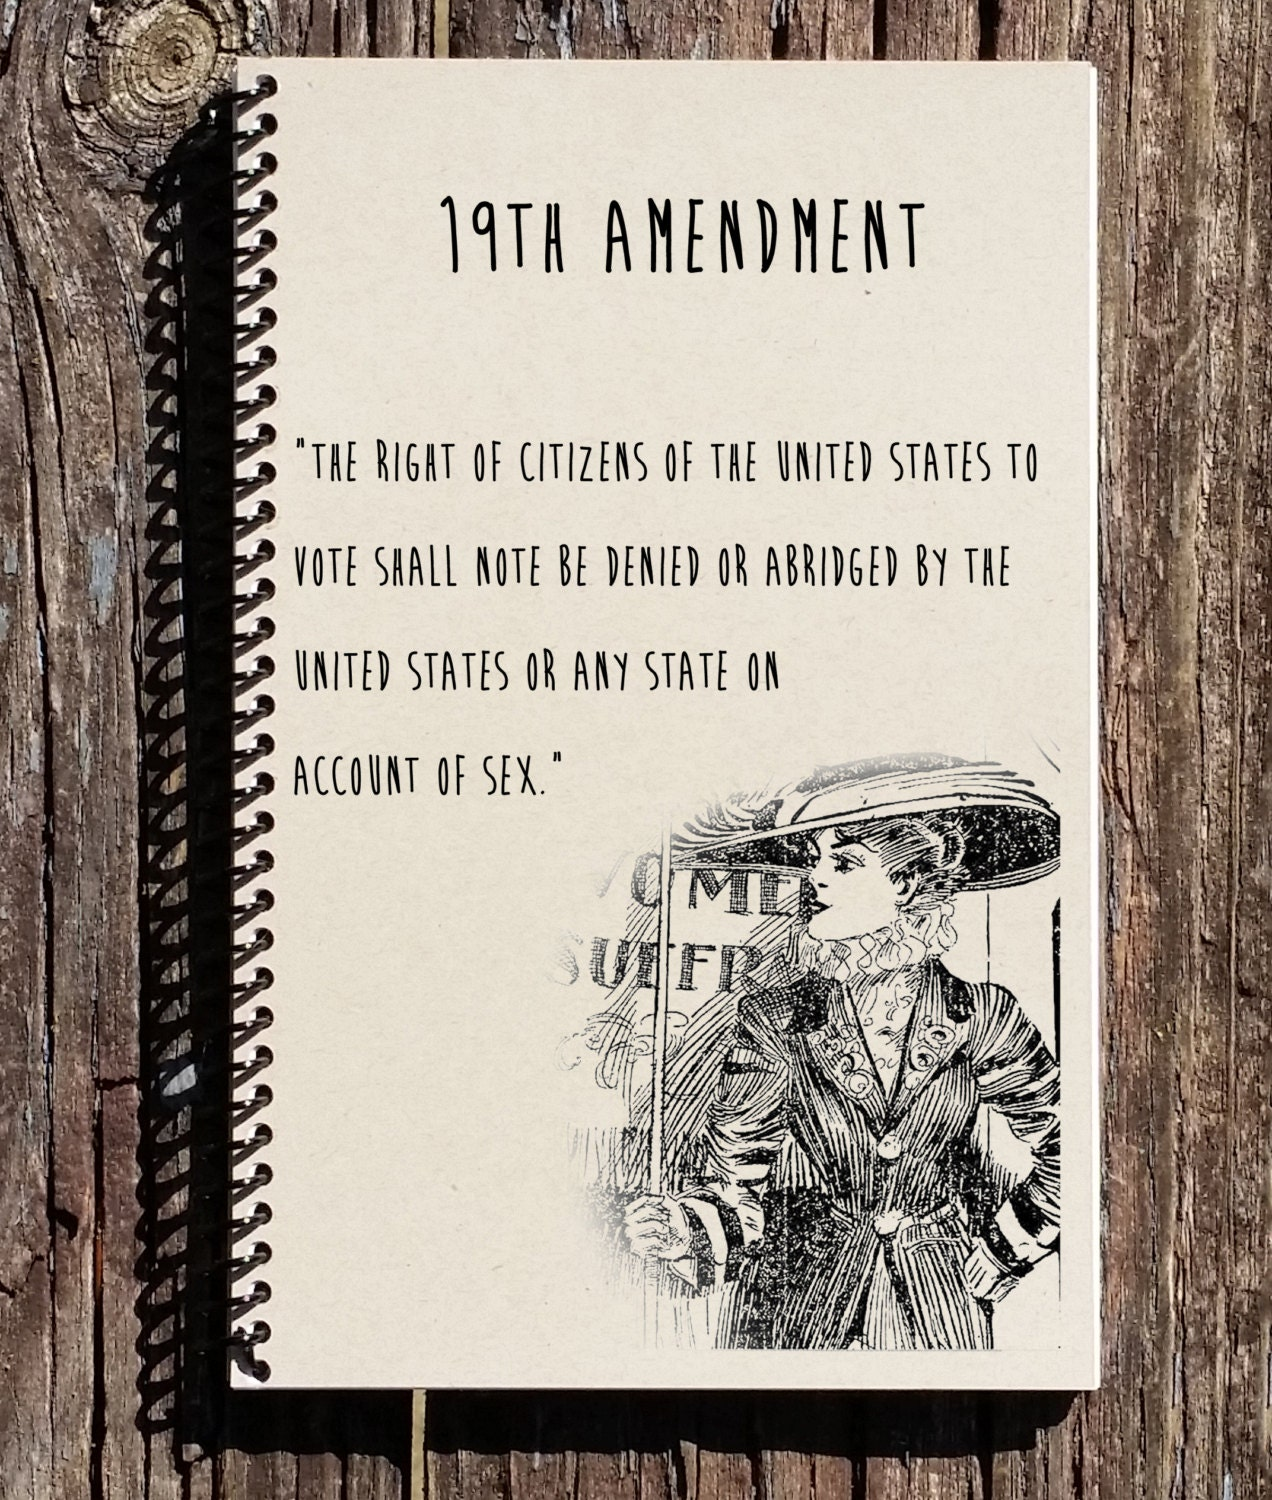 reasoning behind the 19th amendment How much impact did woman suffragists have on the 14th amendment how was it that its provisions did not give women the right to vote what did the 15th amendment add that wasn't in the 14th.